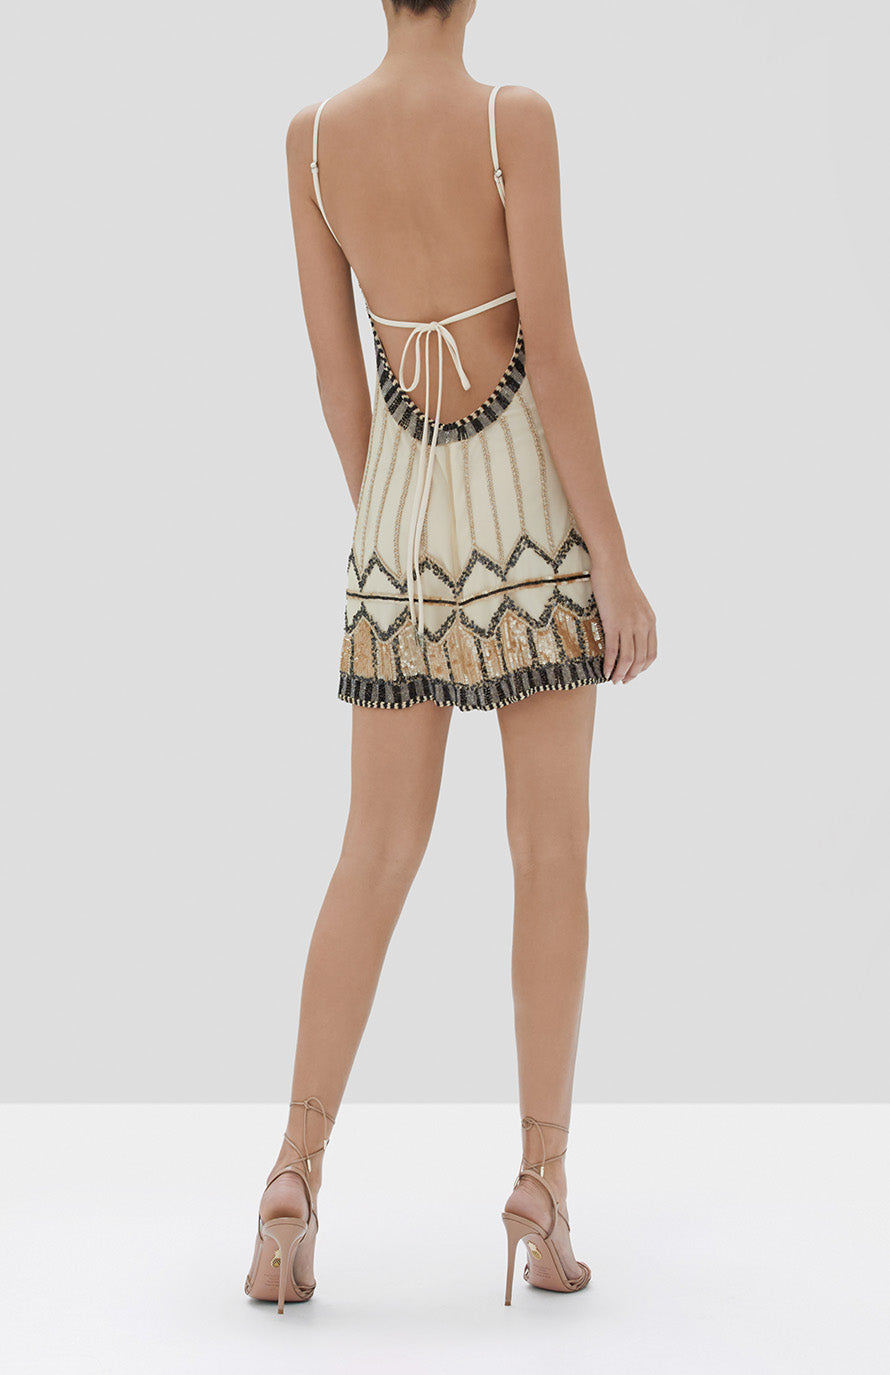 Alexis Jayna Dress in Tan Embroidery from the Fall Winter 2019 Ready To Wear Collection - Rear View